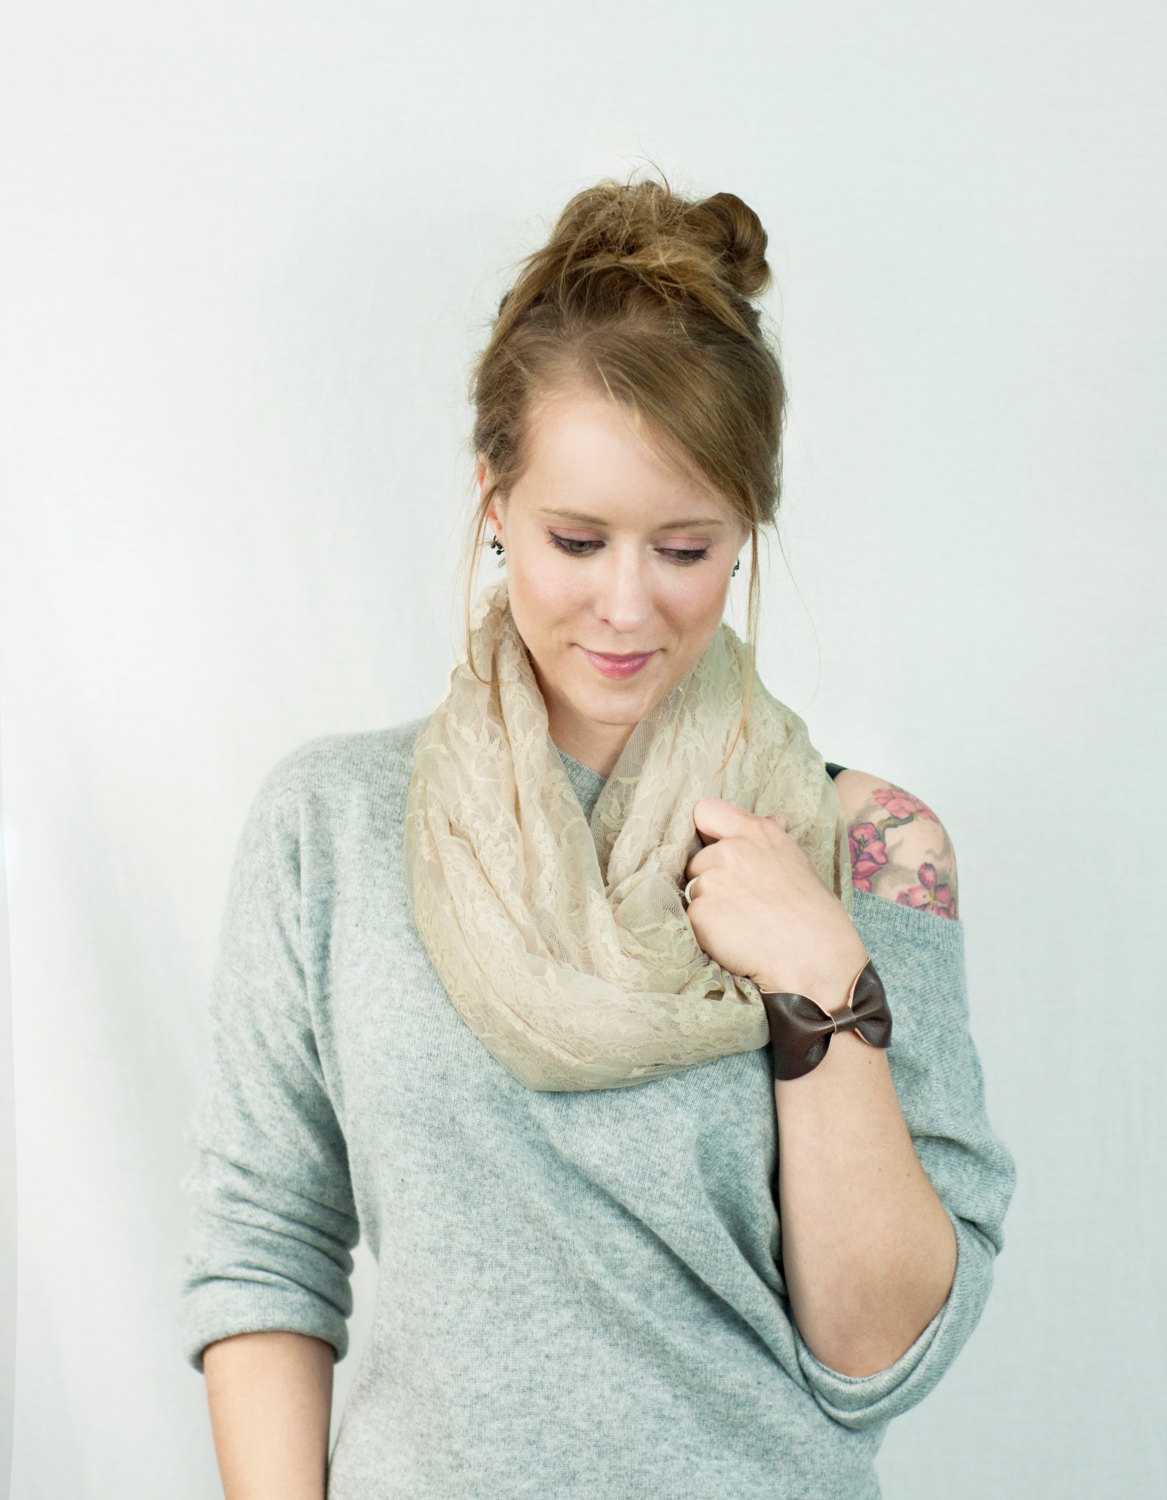 Ivory Lace Infinity Scarf Champagne Off White Floral Circle Womens Accessory Wide Women Circle Long Dark